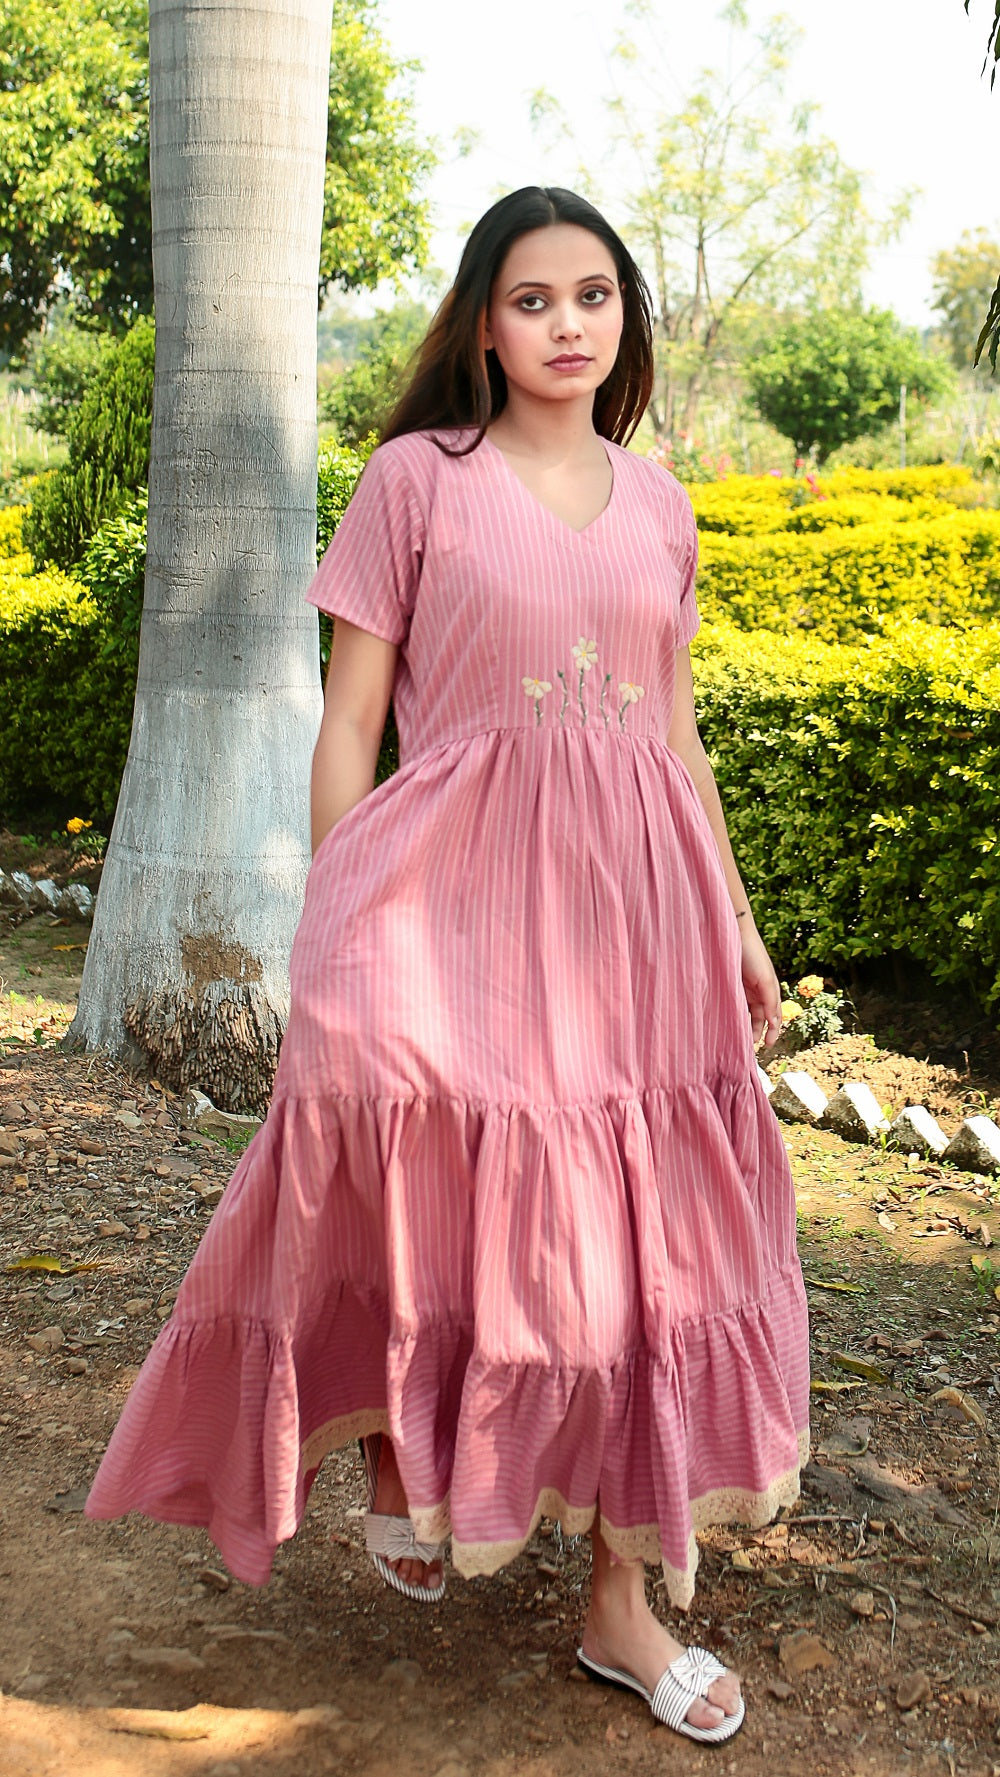 Tier Tier Striped Masakali Dress online at bebaakstudio.com